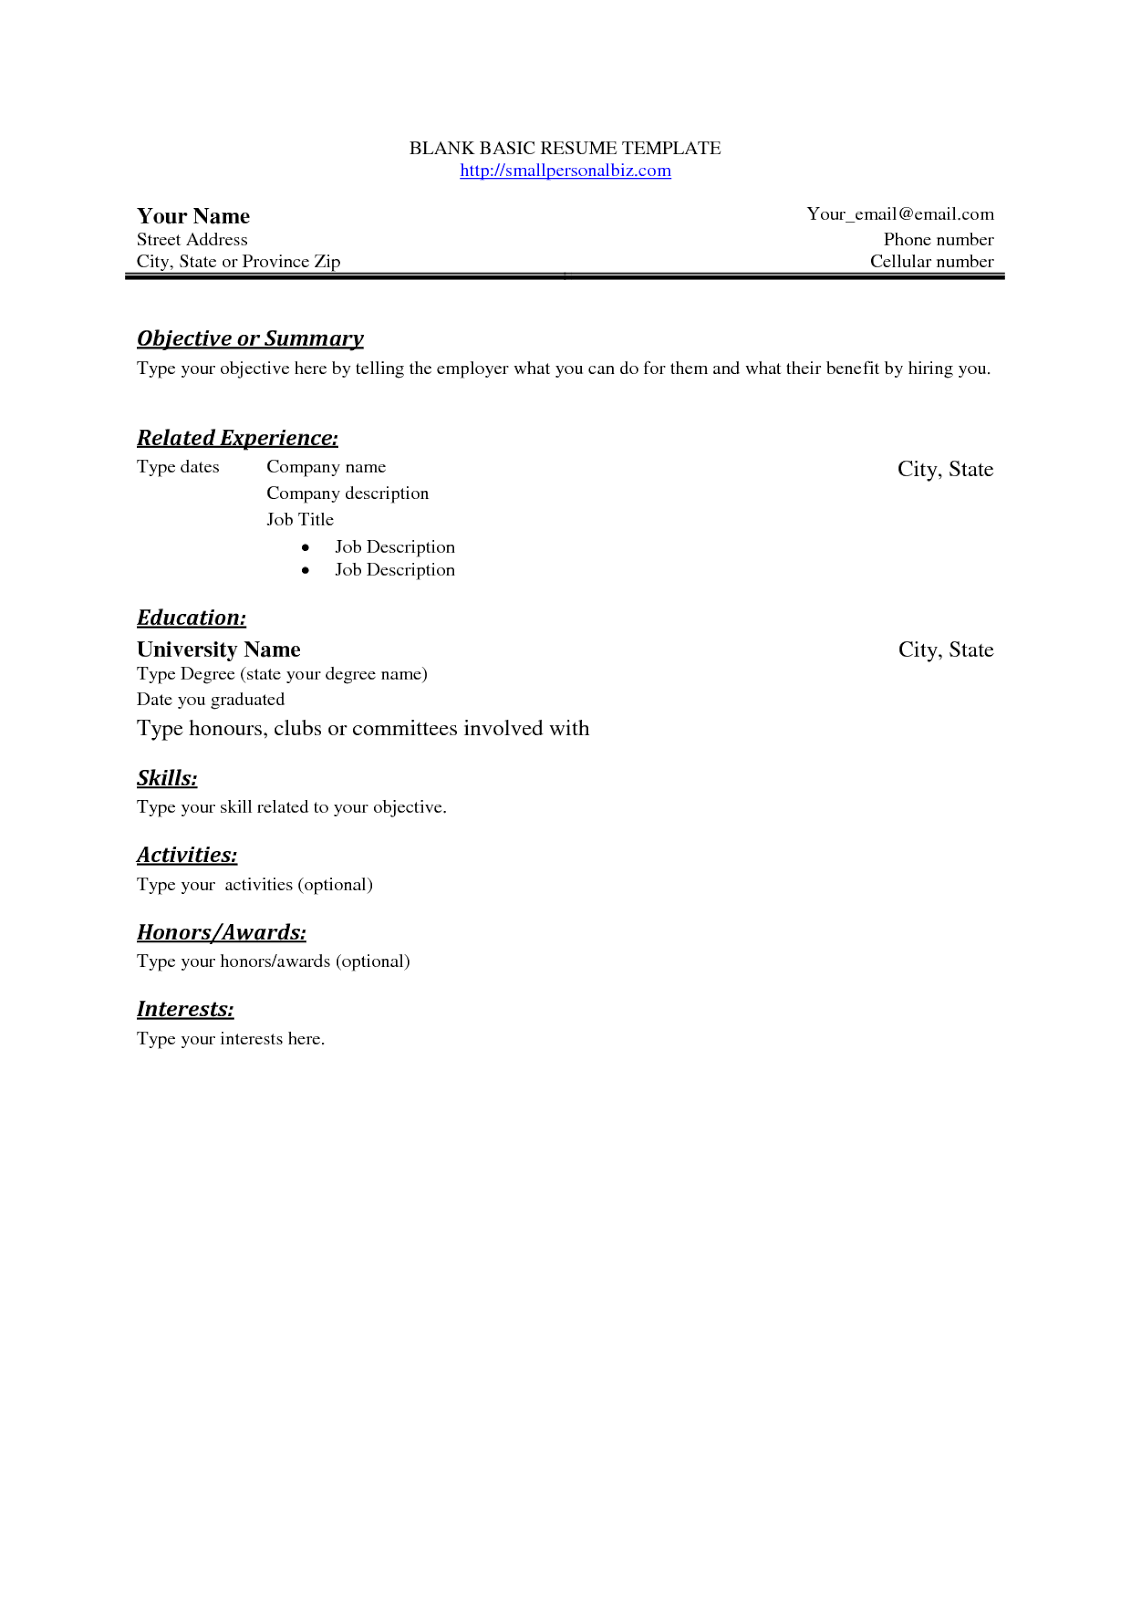 resume format ready to fill up resume samples writing resume format ready to fill up resume templates resume examples samples cv resume blank templates